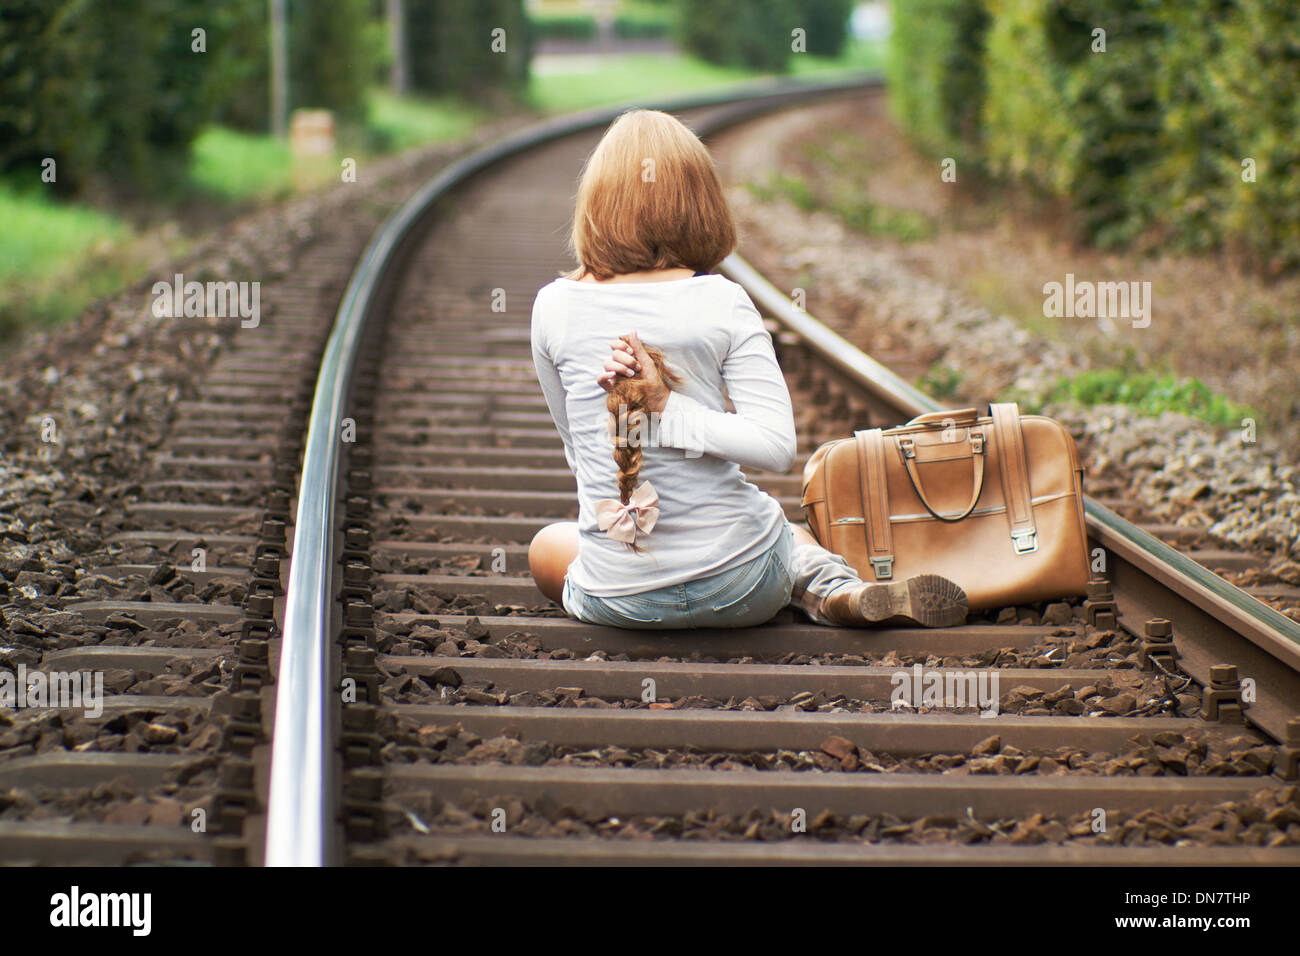 Woman sits on railway track with cut off pigtail in hand